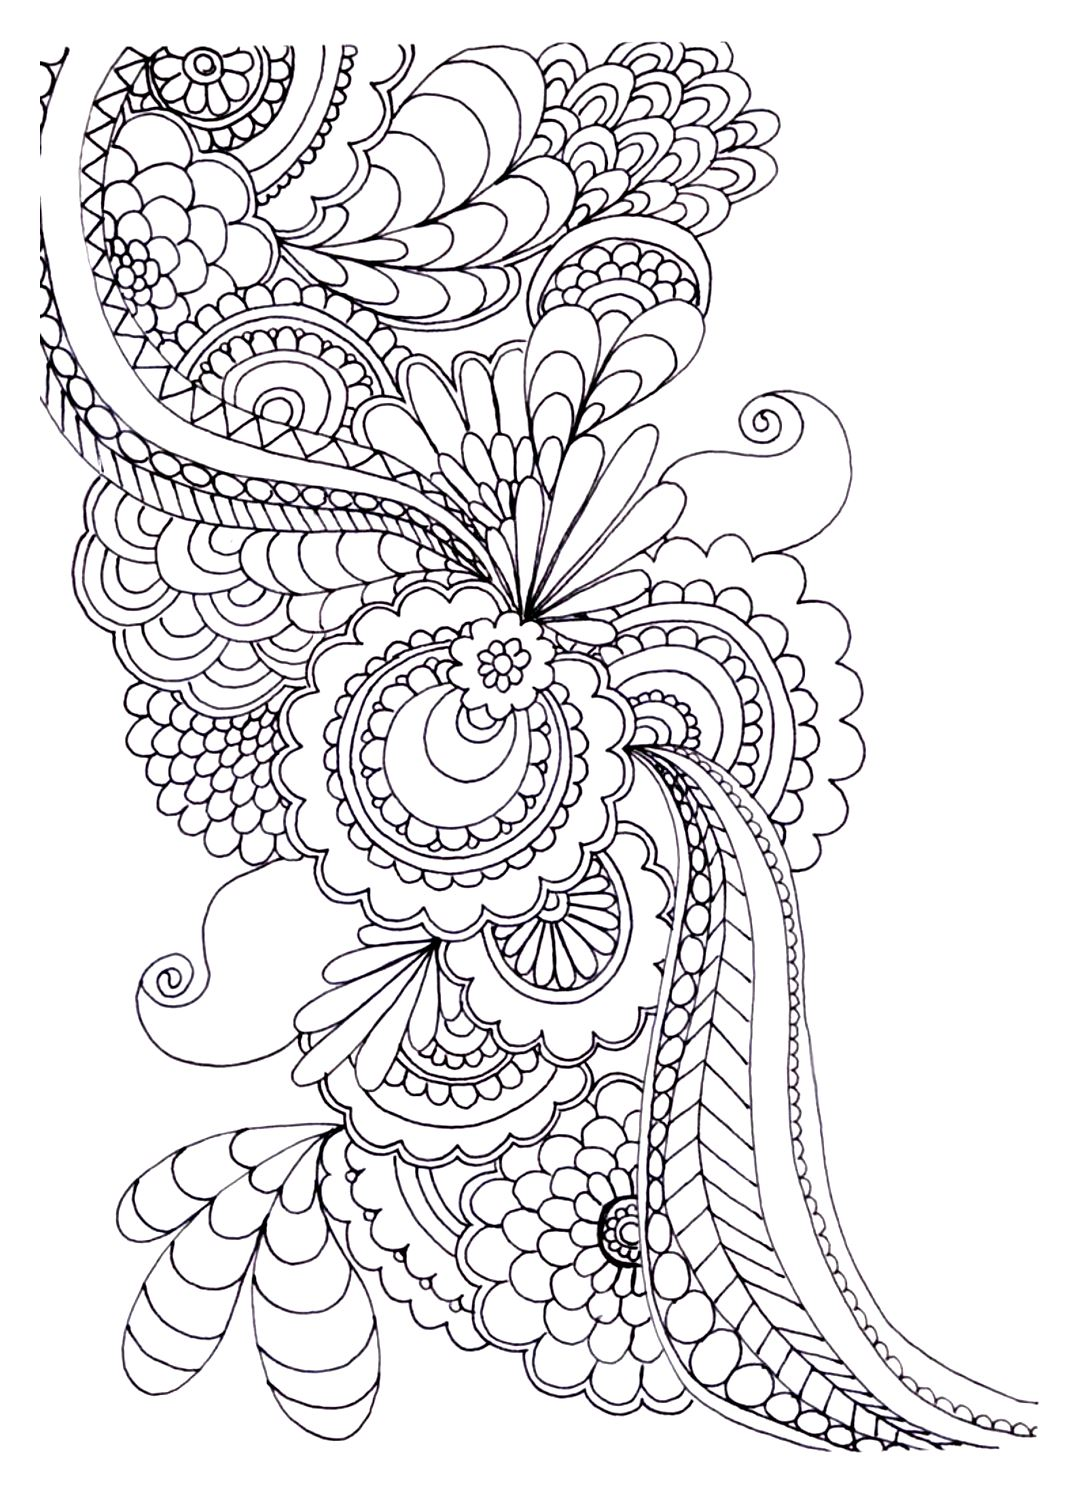 20+ Free Adult Colouring Pages - The Organised Housewife | coloring pages for adults online printable